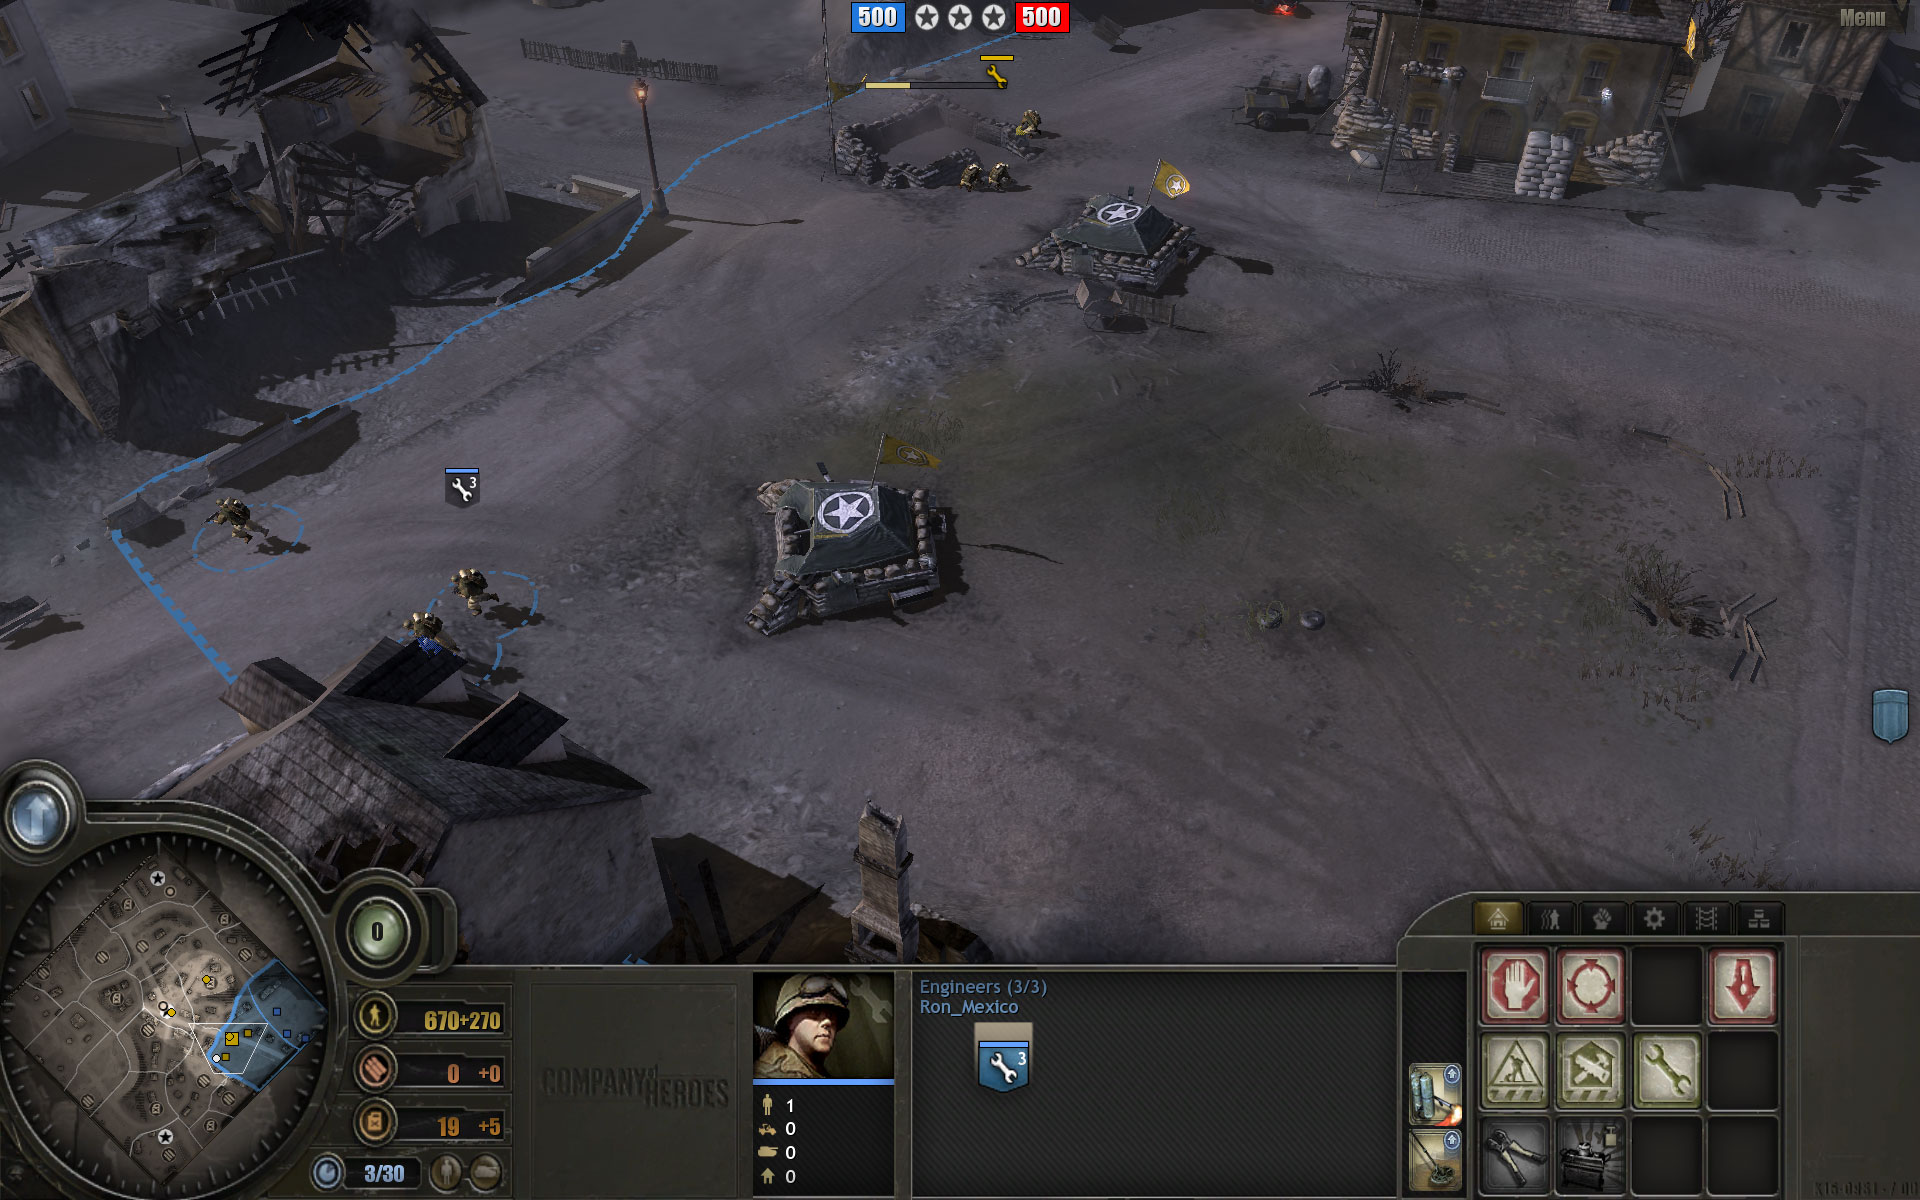 Ati Radeon Hd 3870 X2 Video Card Review Page 5 Of 12 Legit Reviewscompany Of Heroes